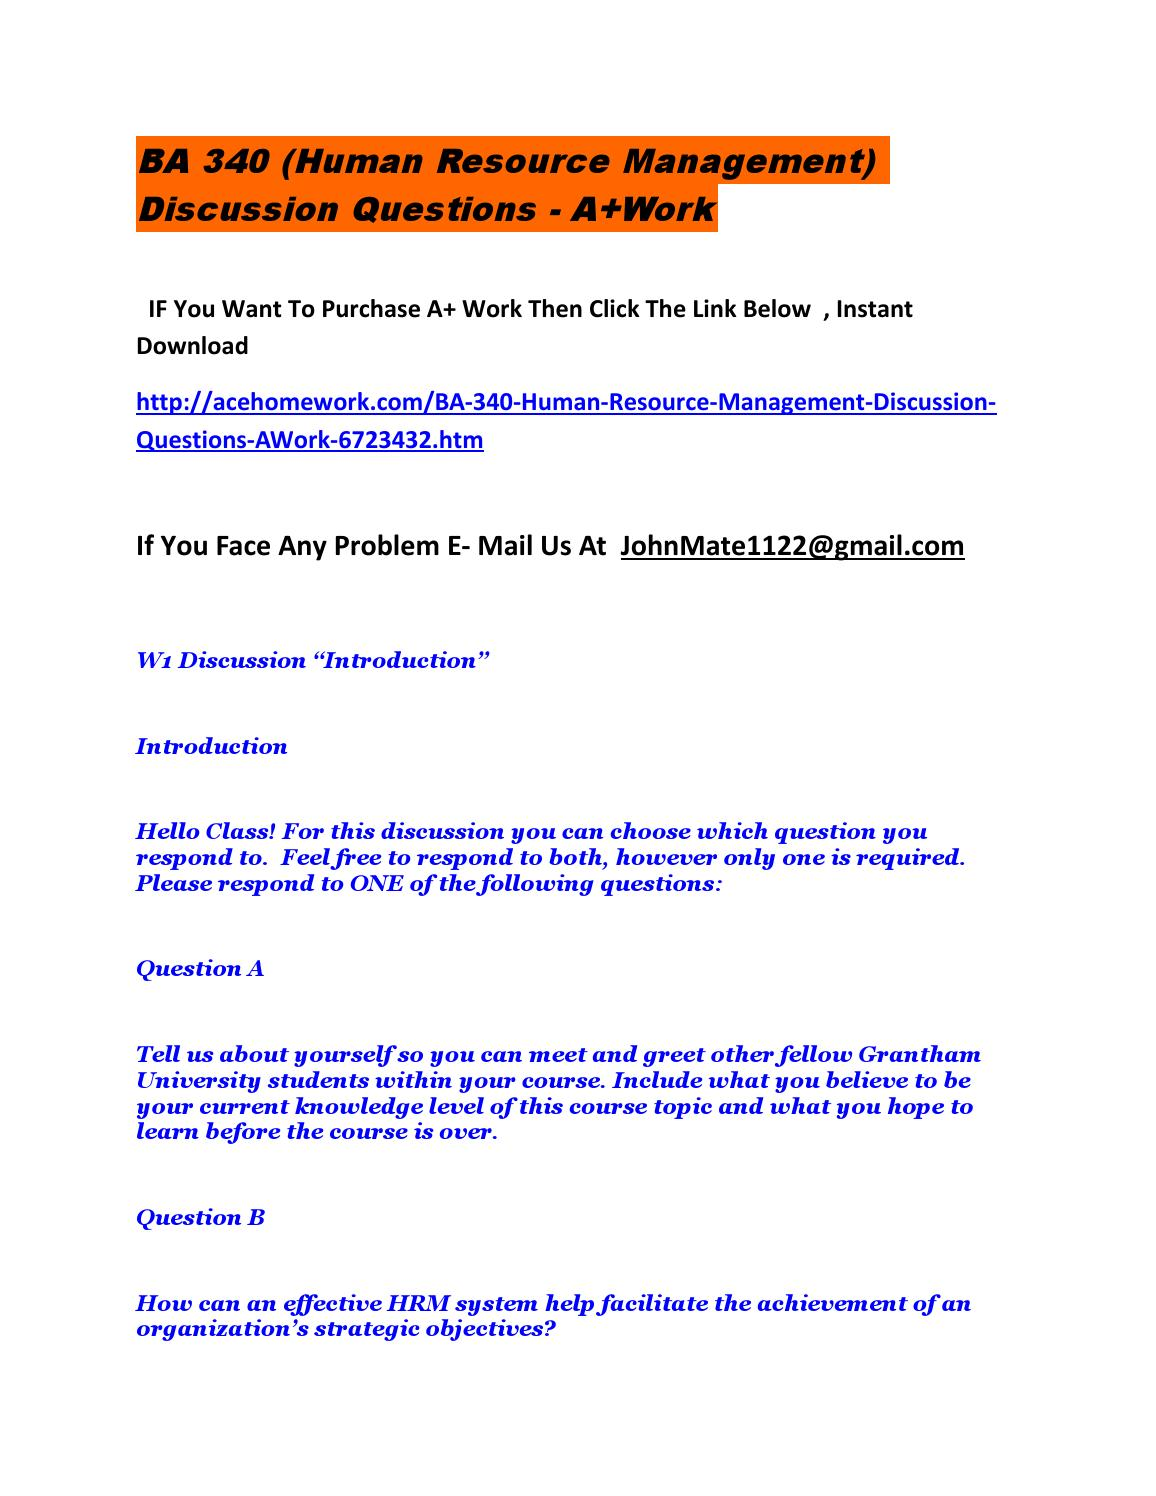 Ba 340 (human resource management) discussion questions ) by